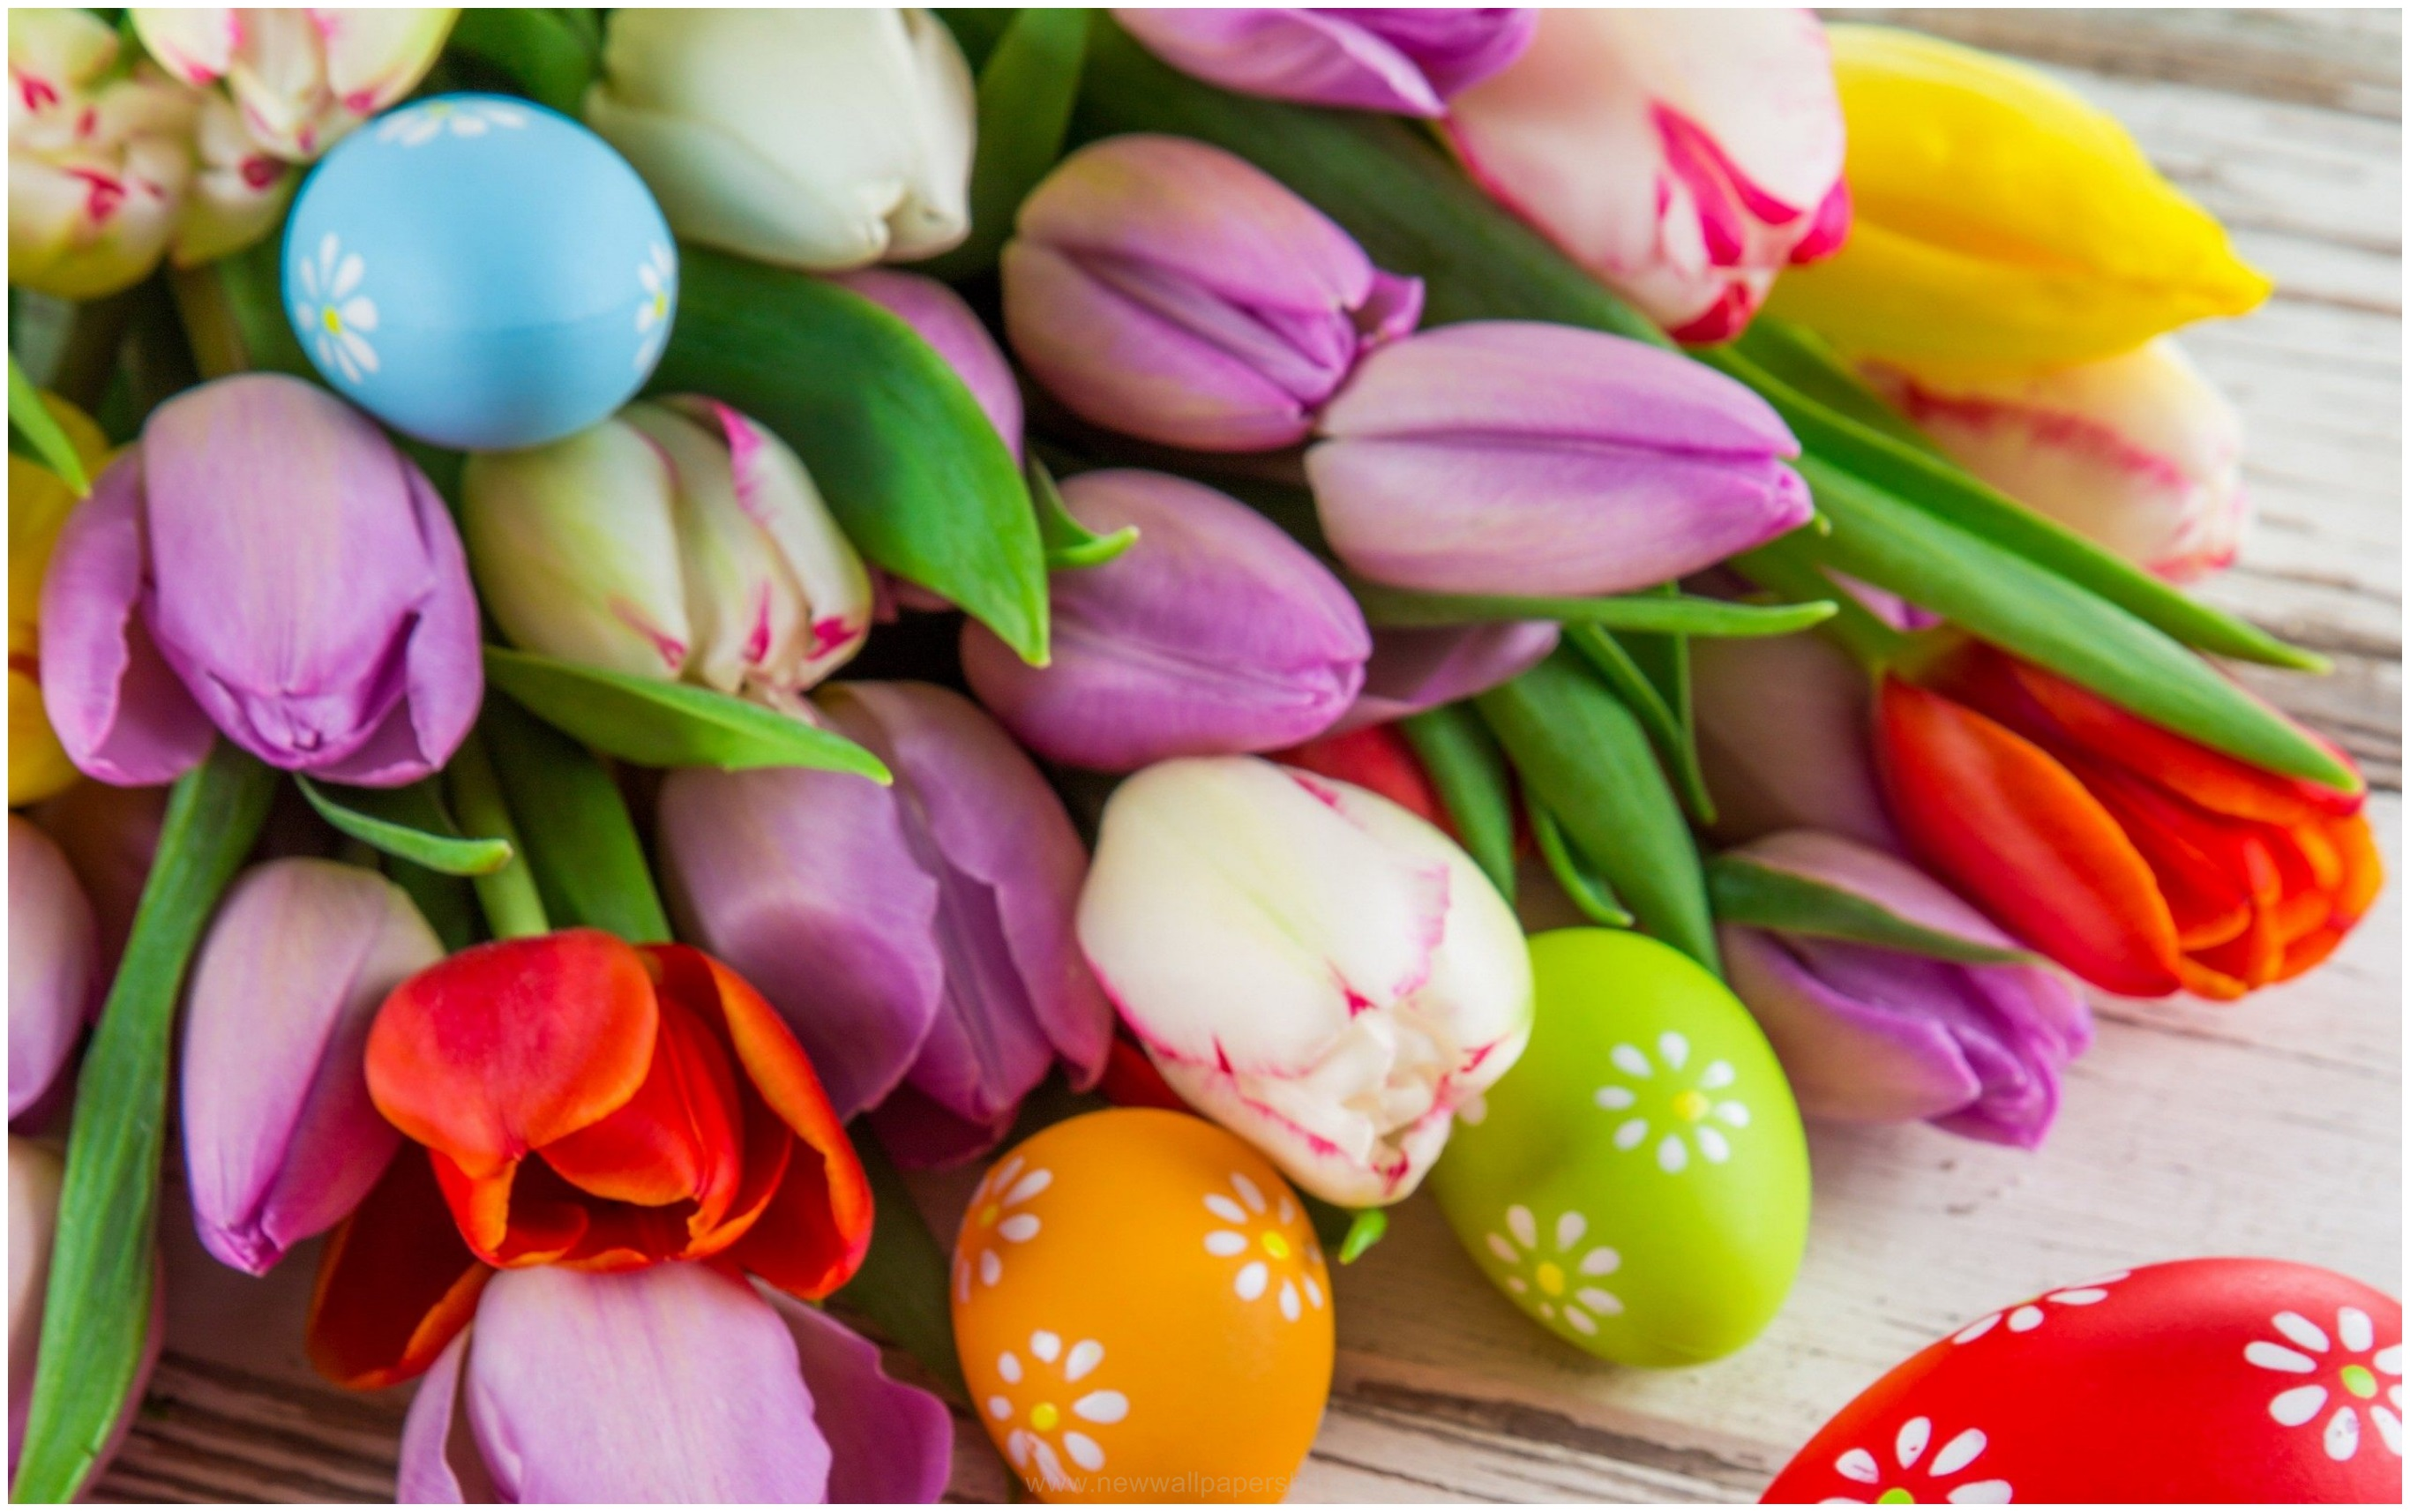 EASTER EGGS AND TULIP FLOWERS HD WALLPAPER 9HD Wallpapers 2732x1714